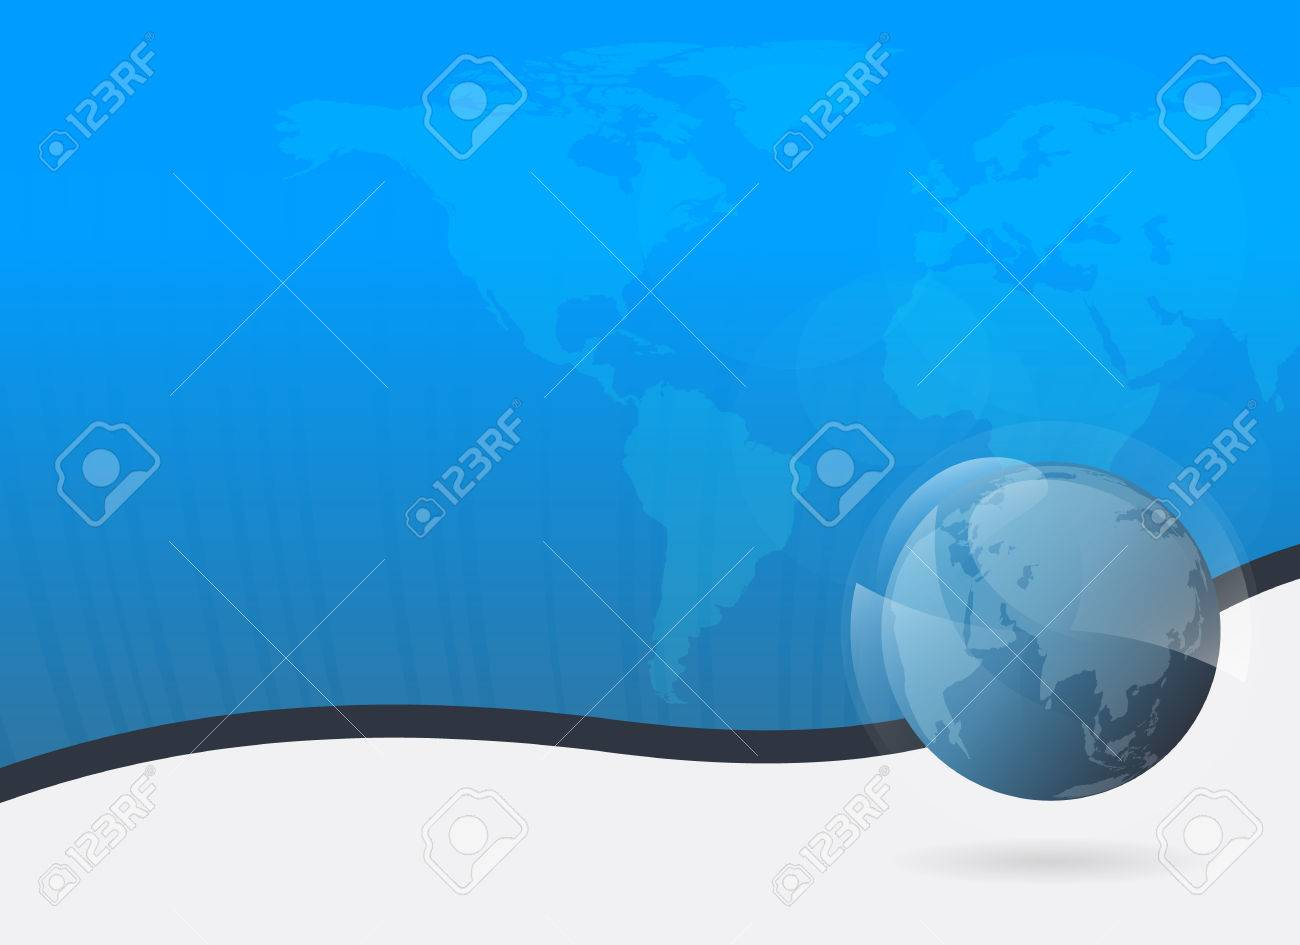 Business background light blue 3d globe and world map with business background light blue 3d globe and world map with blue shiny backdrop vector illustration gumiabroncs Gallery